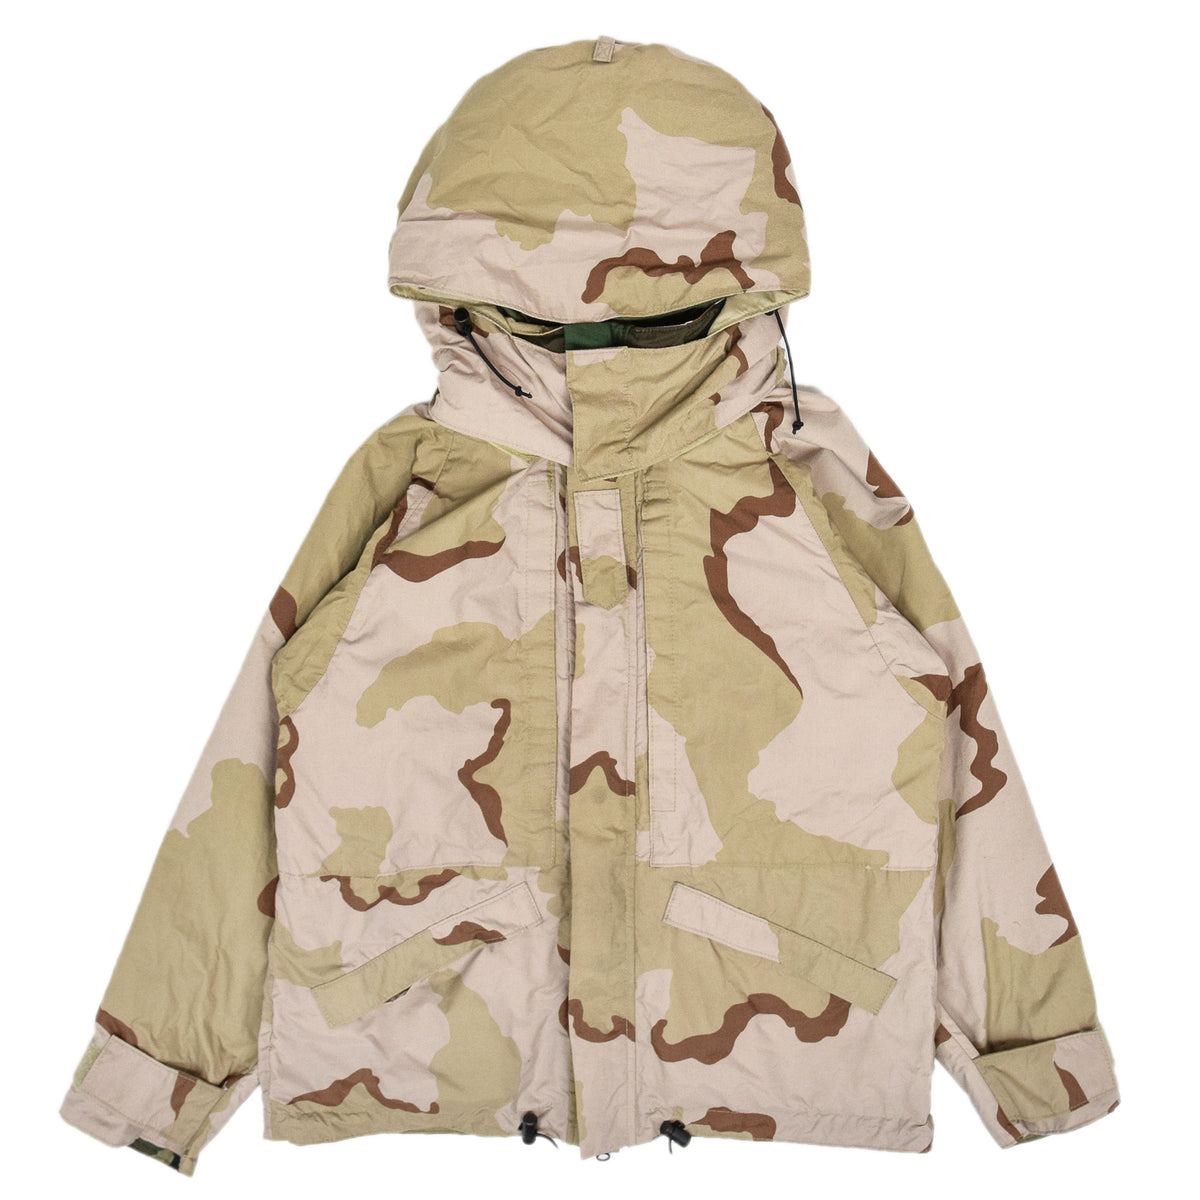 Vintage Reversible Military Hooded Desert & Woodland Camouflage Jacket M reverse front